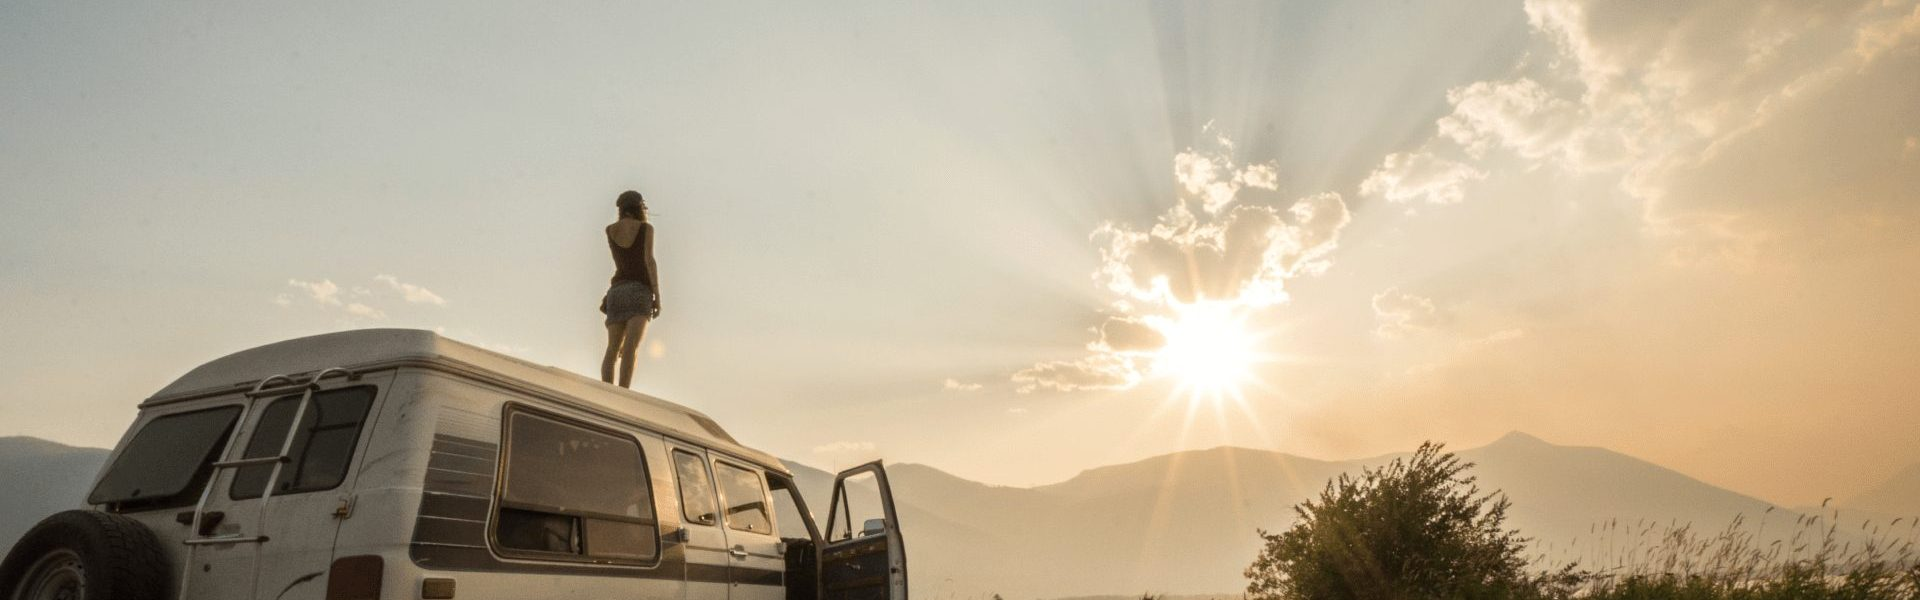 A woman stands on top of her van at sunset.